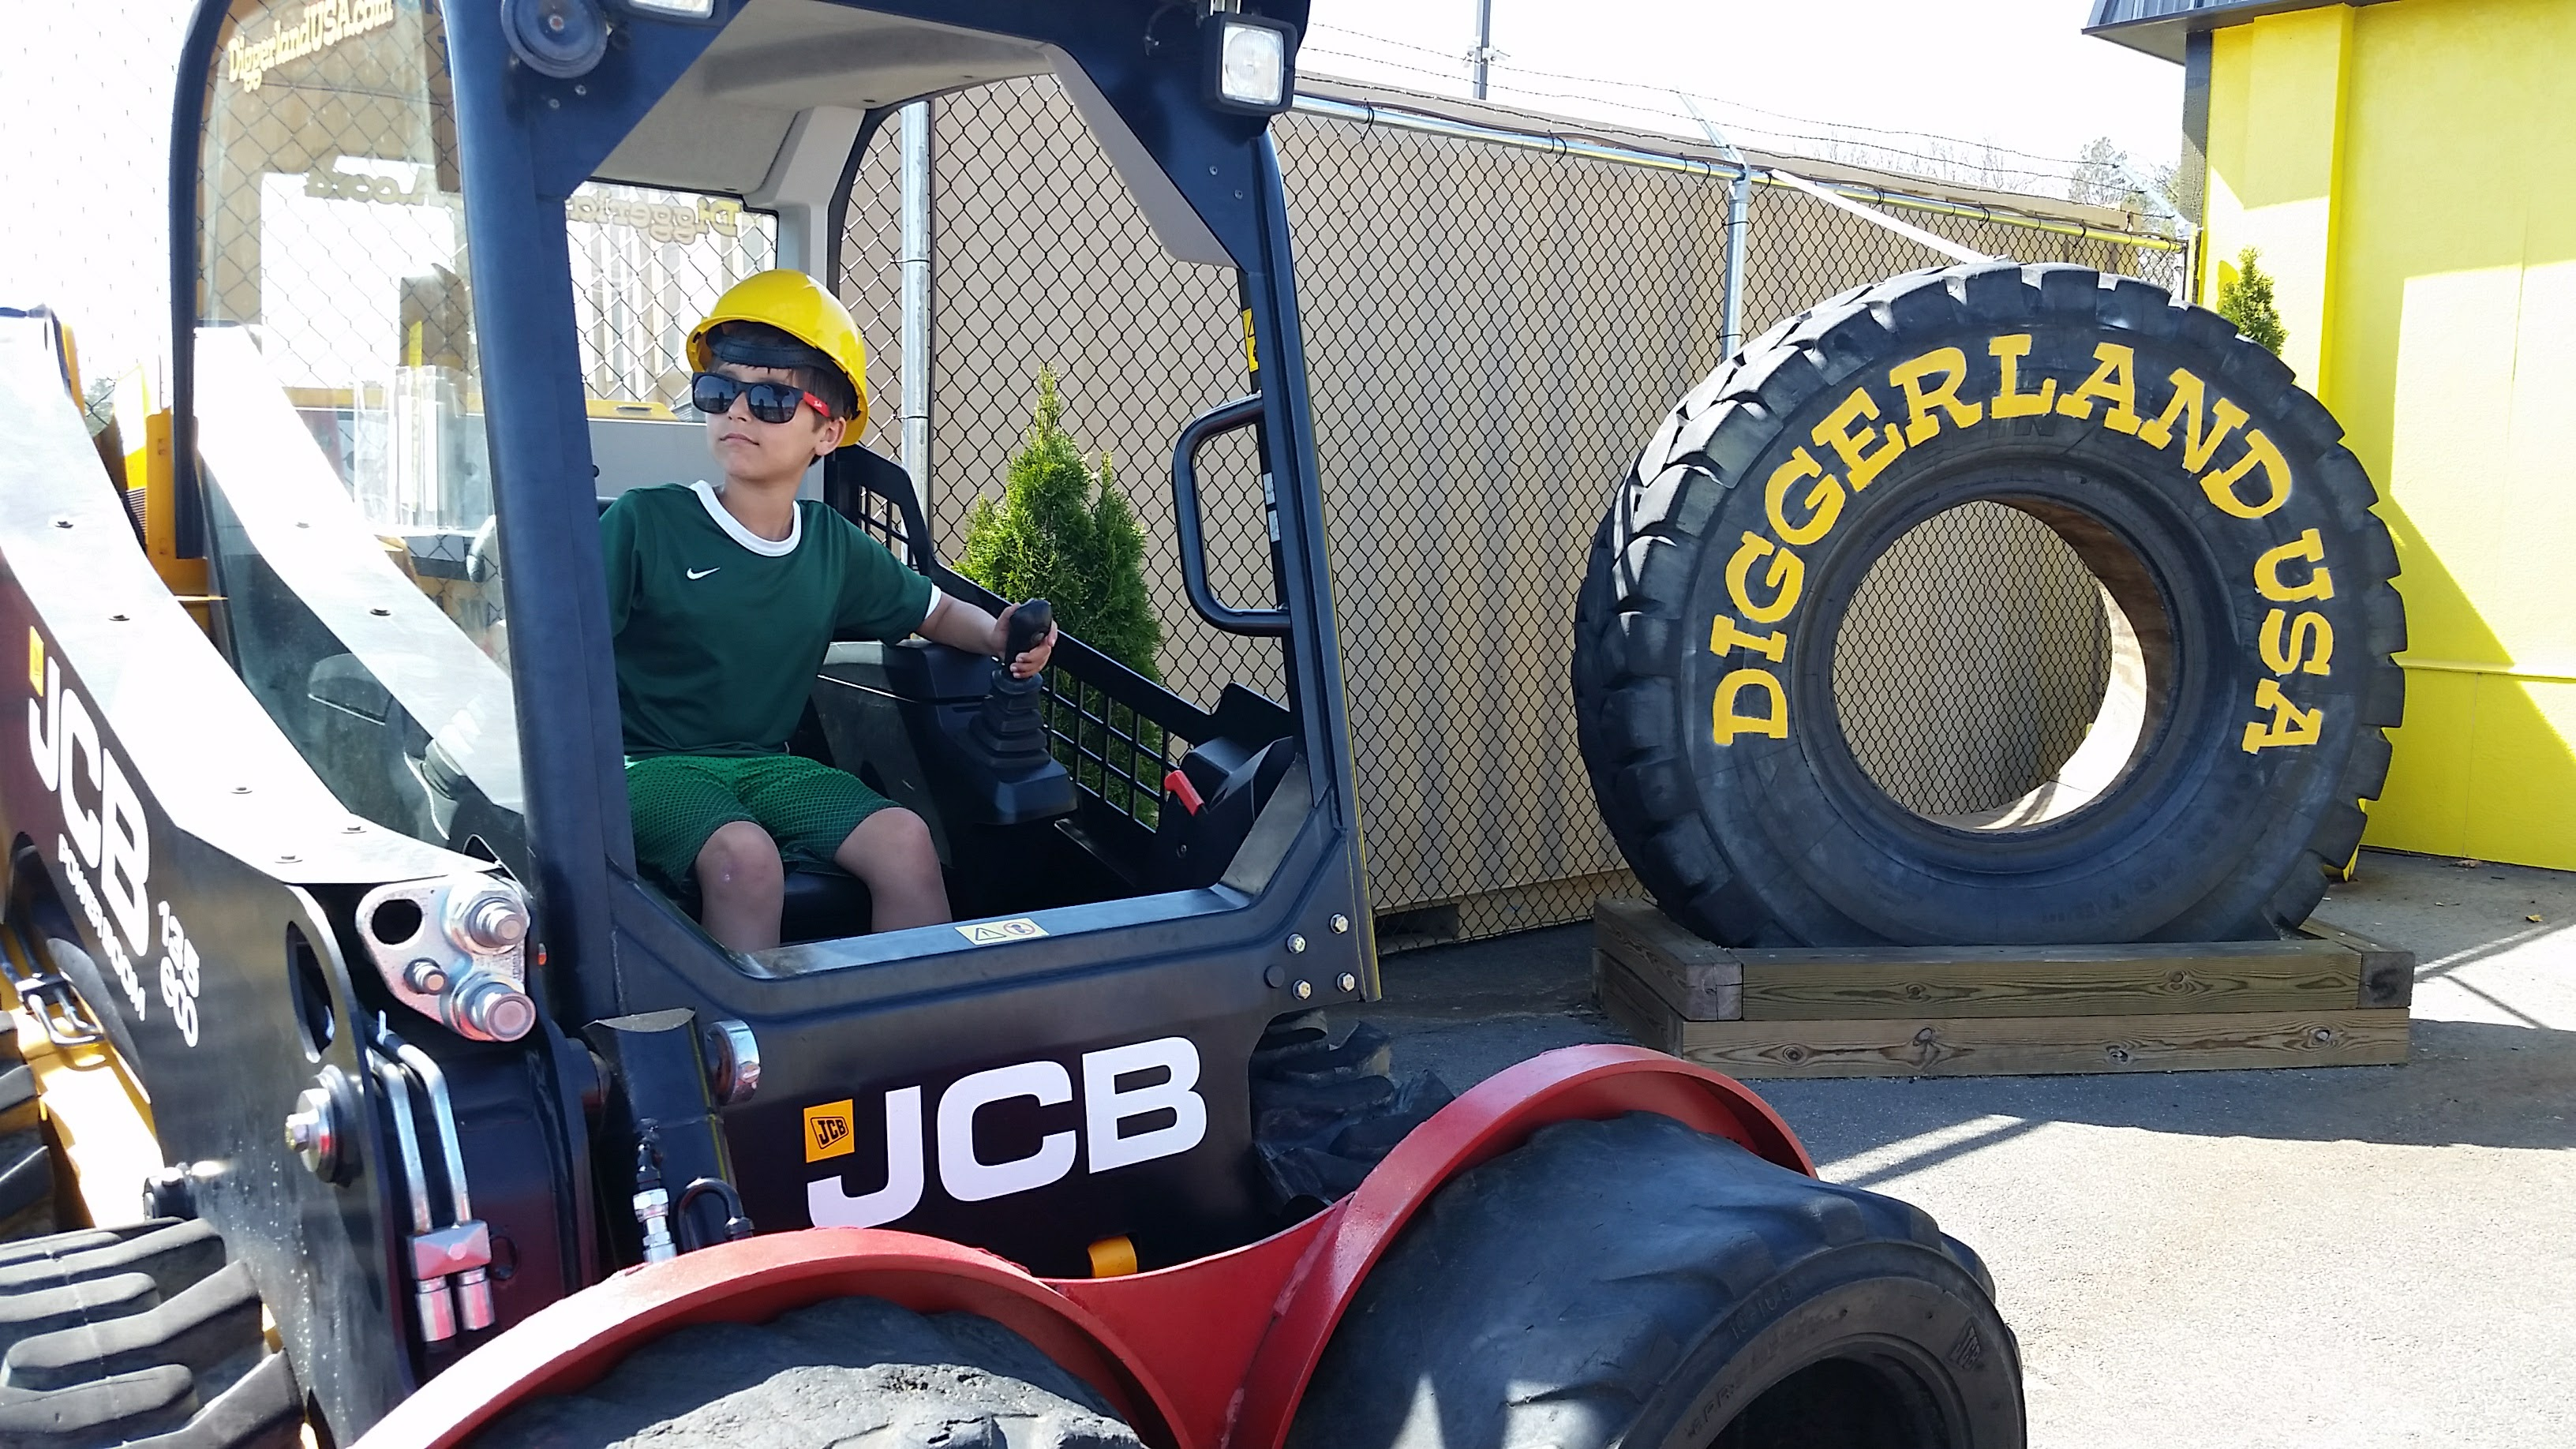 Boy sitting on a tractor at Diggerland USA